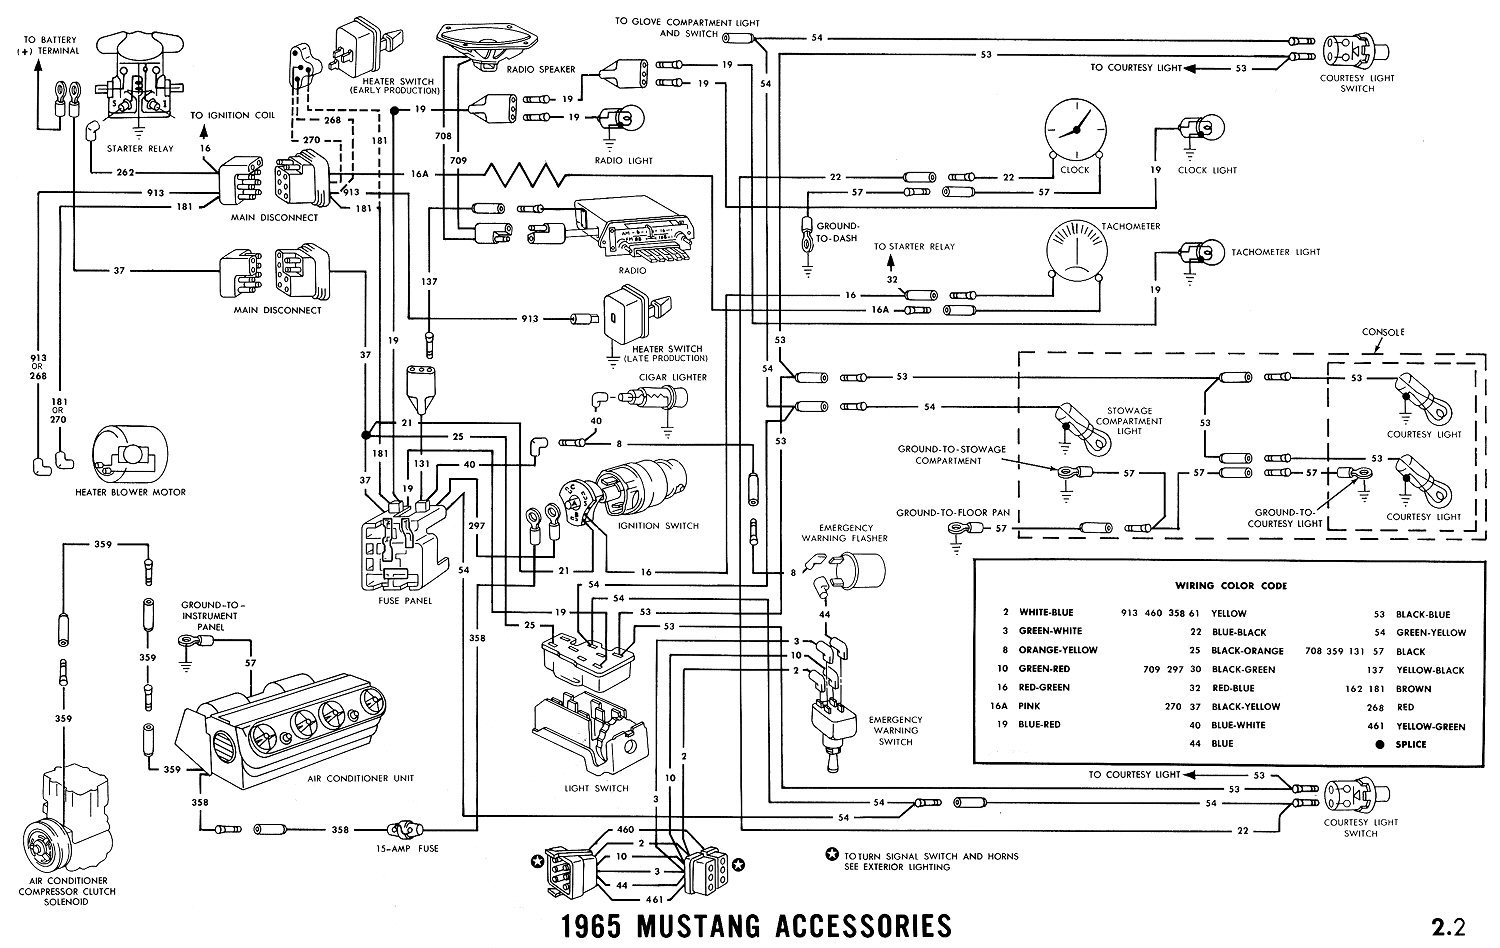 wiring schematic colors